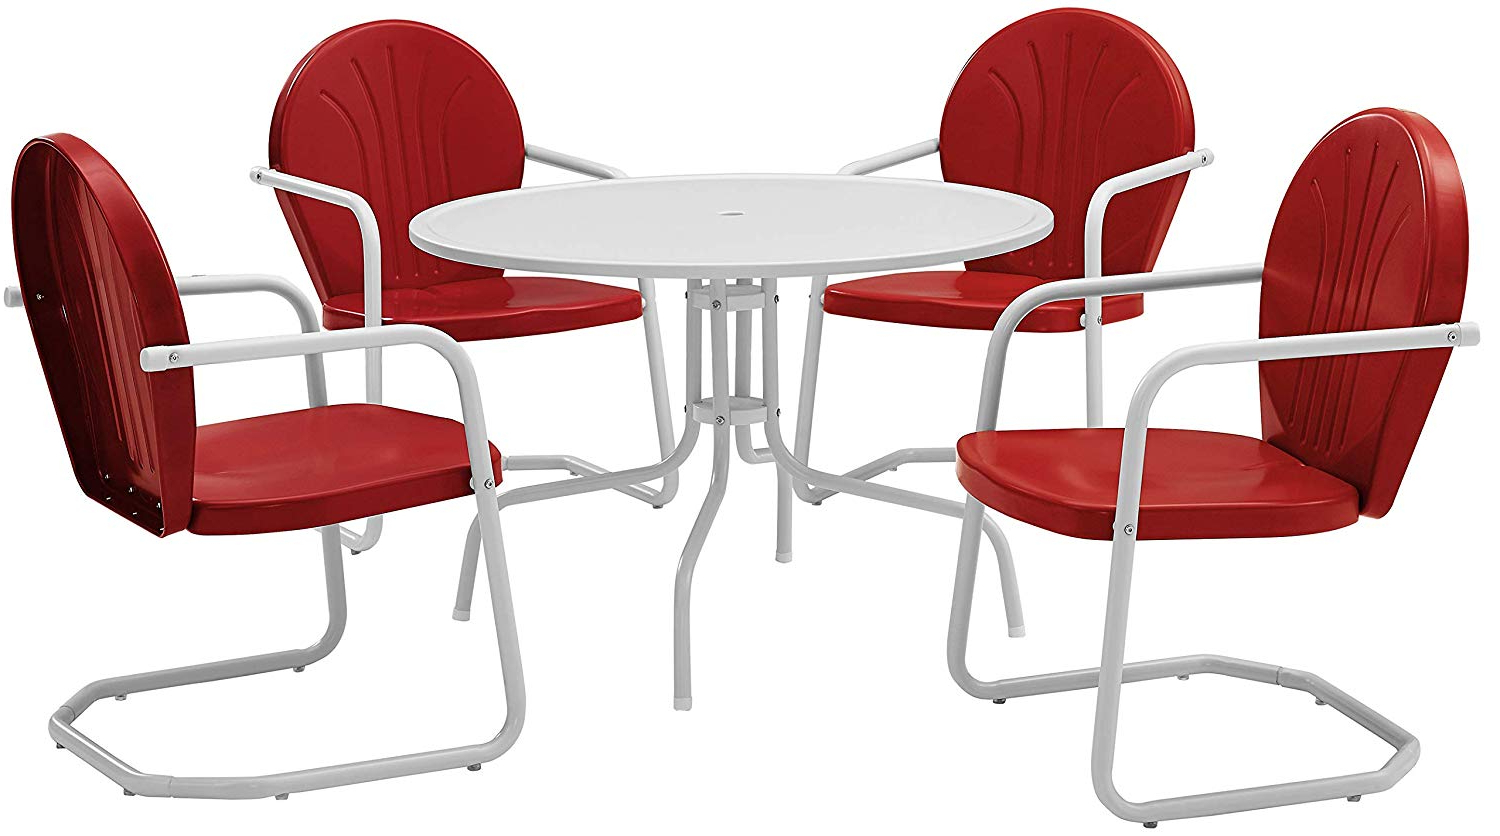 Crosley Furniture Griffith 5 Piece Metal Outdoor Dining Set With Table And Chairs – Coral Red Regarding Popular Bate Red Retro 3 Piece Dining Sets (View 6 of 20)